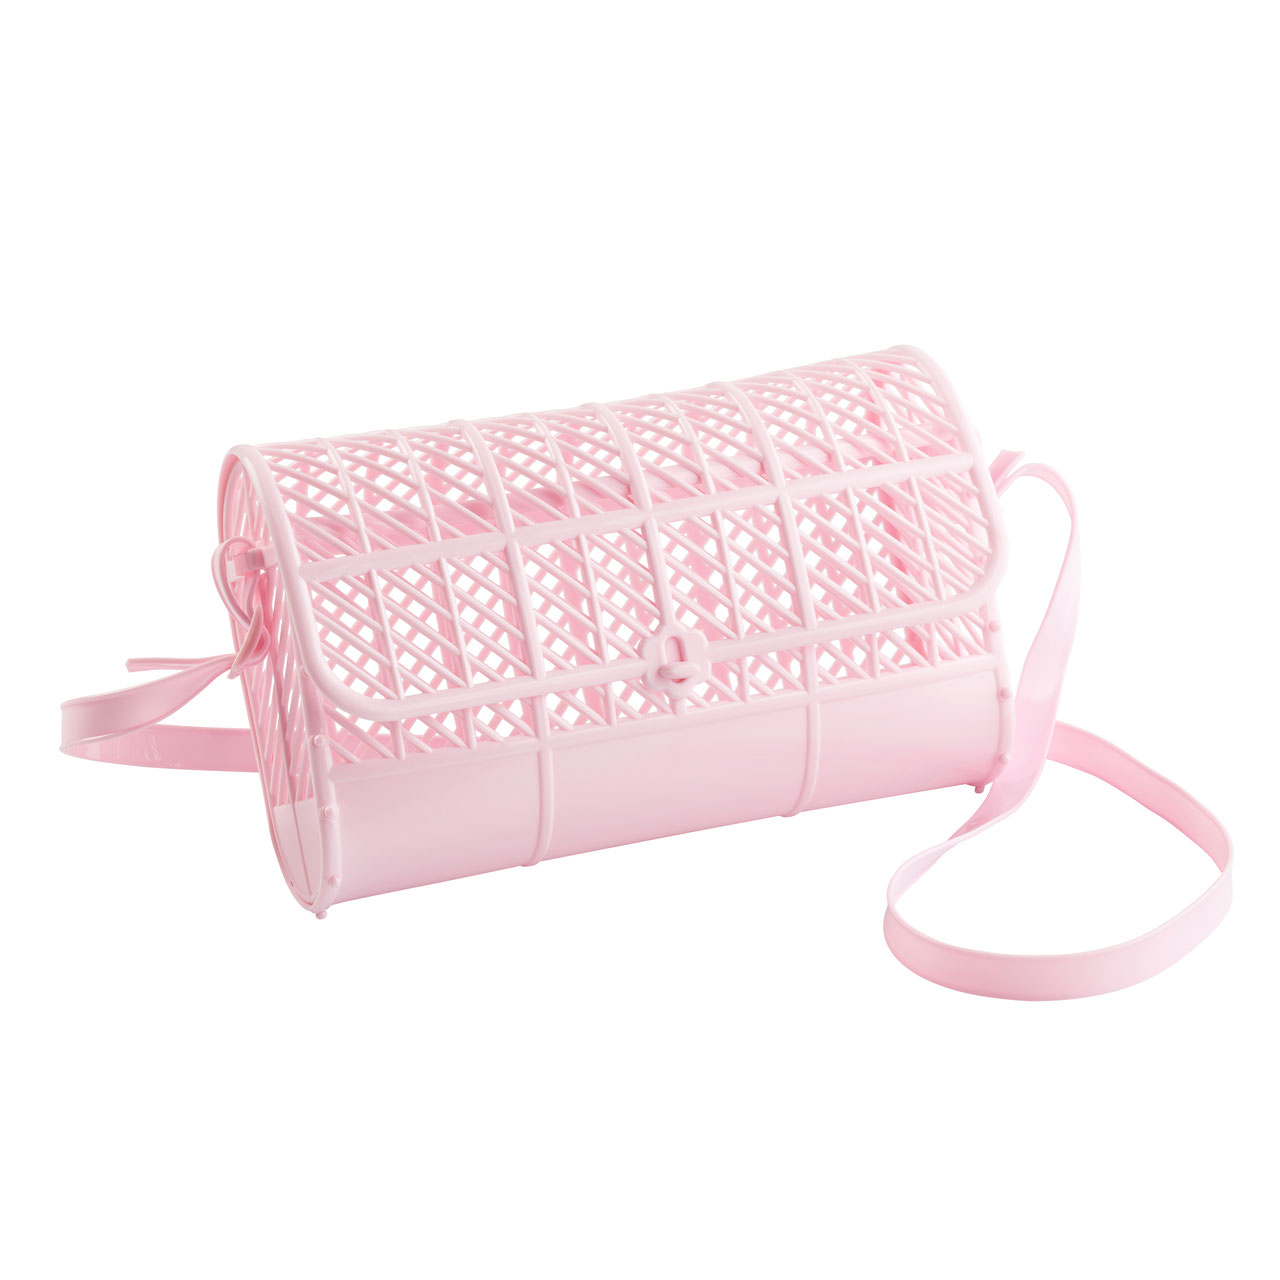 JELLY PURSE – Pink